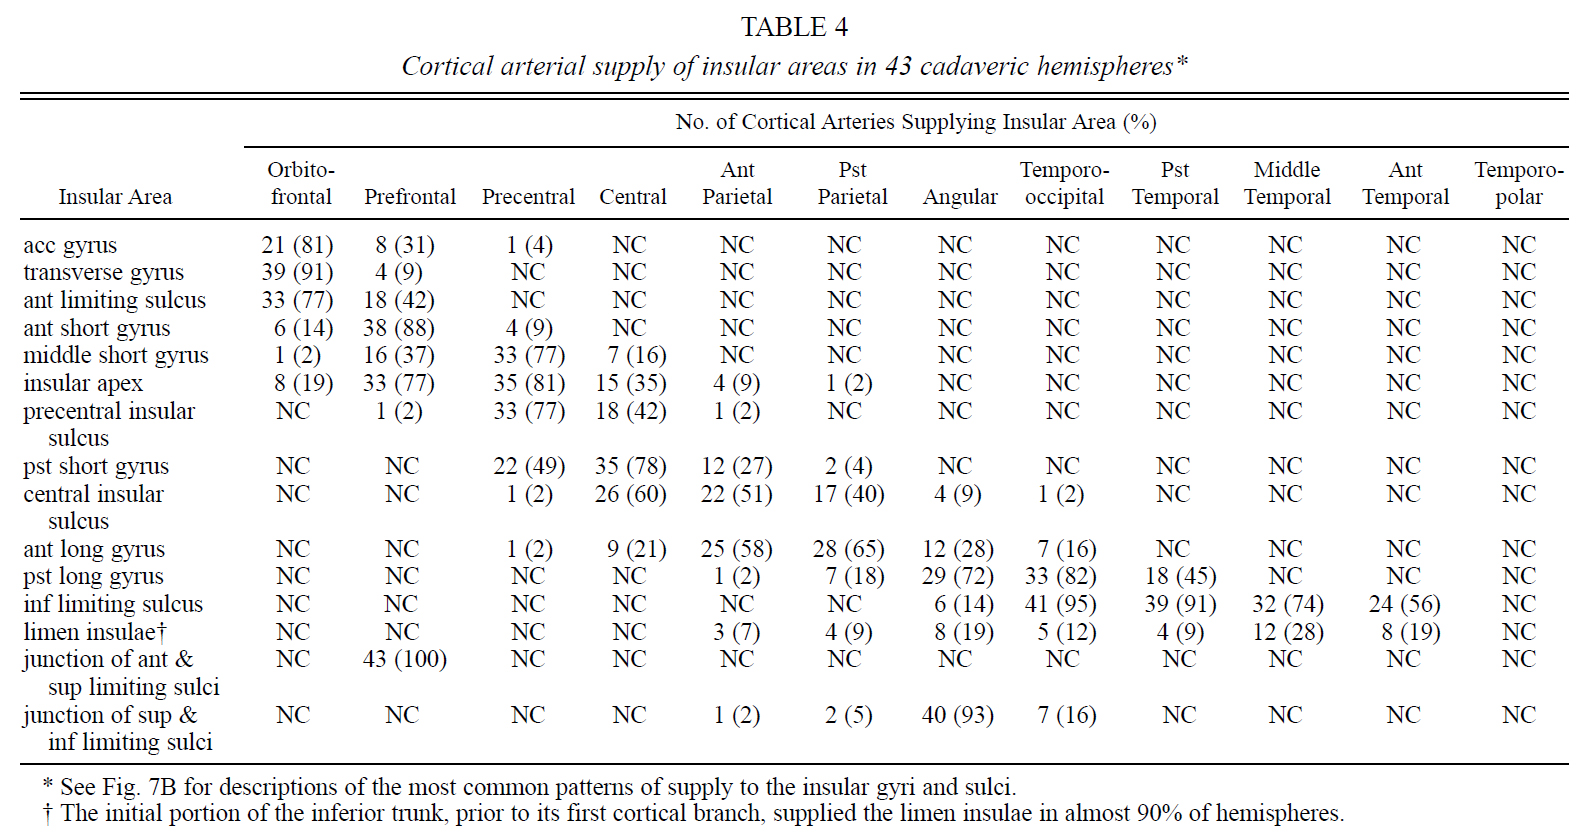 Table 4.Cortical arterial supply of insular areas in 43 cadaveric hemispheres.